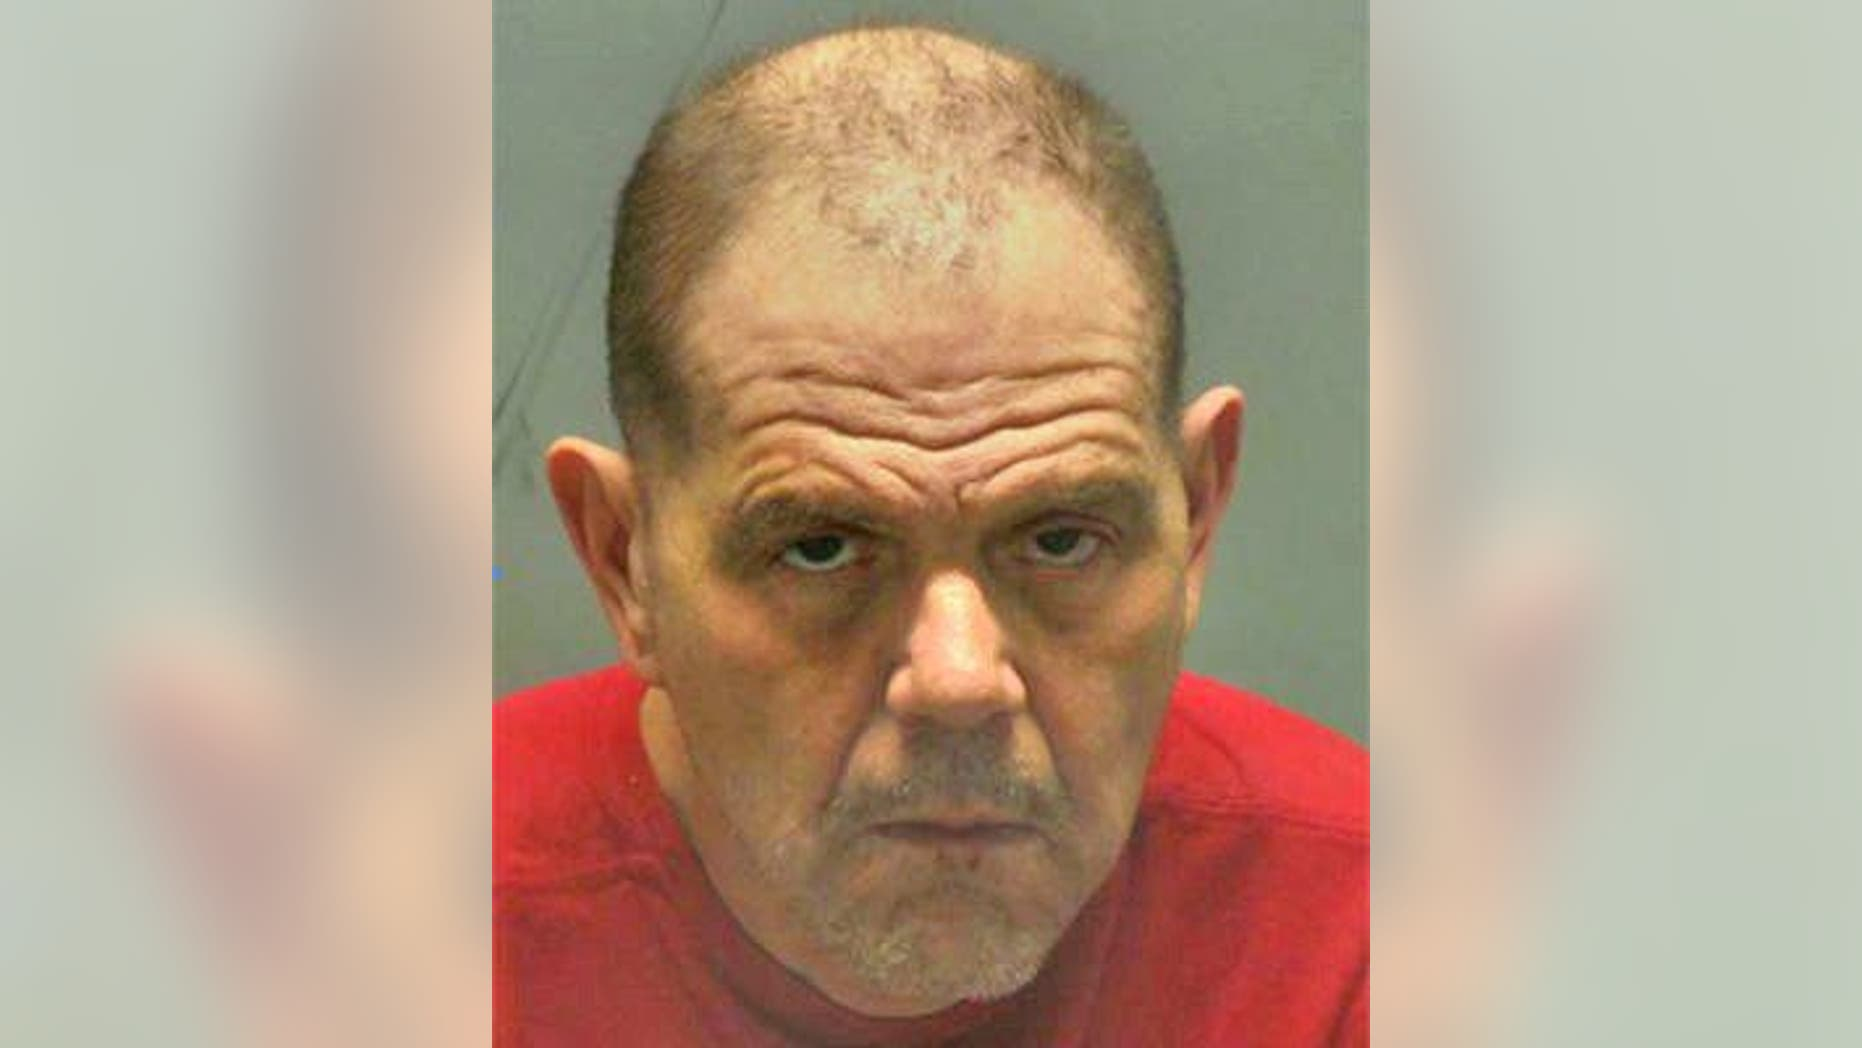 Paul H. Barroni, 57, held up a restaurant so that he could get arrested again.